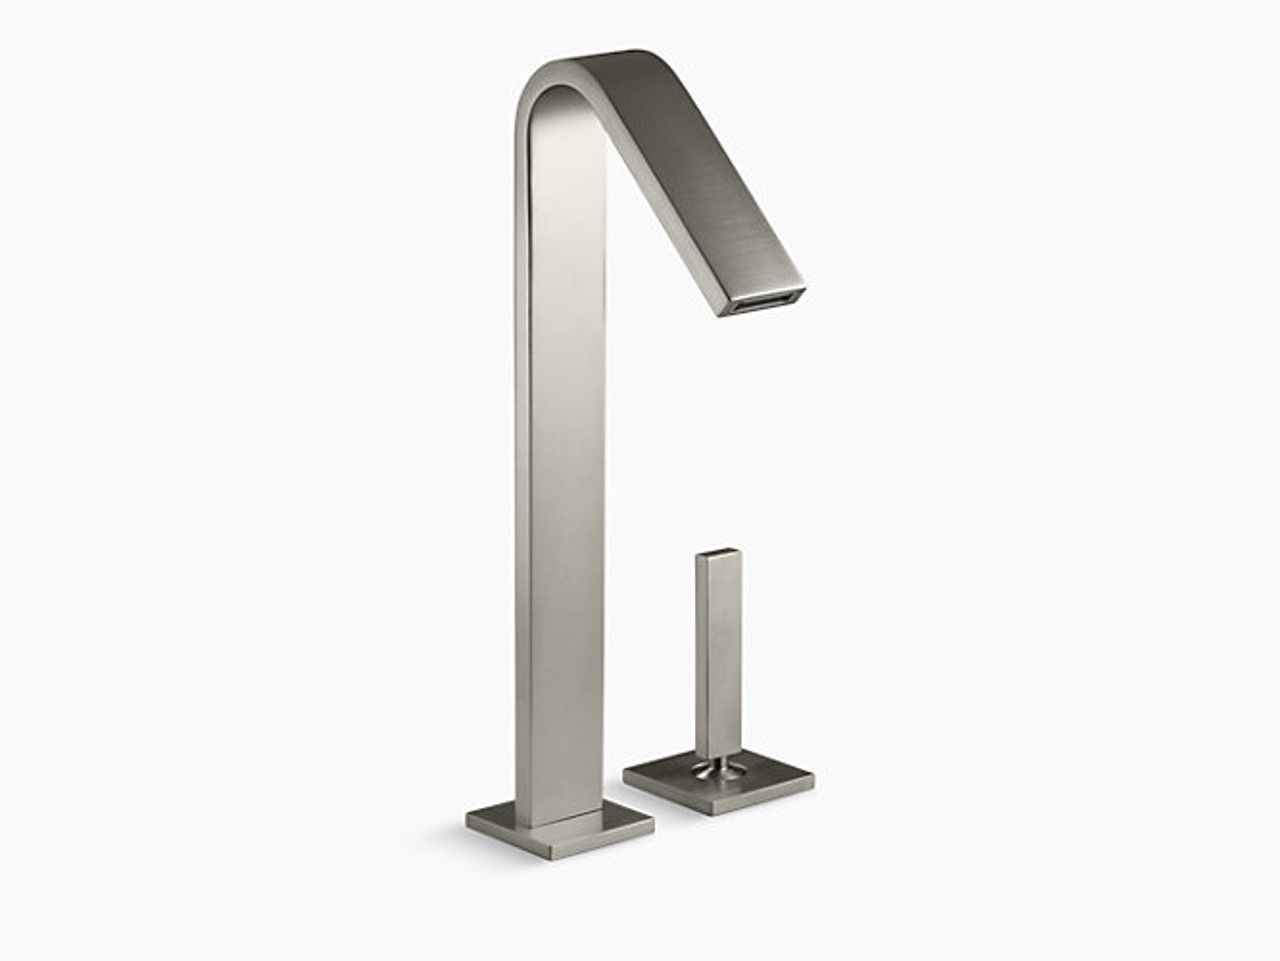 kohler loure tall single handle bathroom sink faucet with lever handle in vibrant brushed nickel